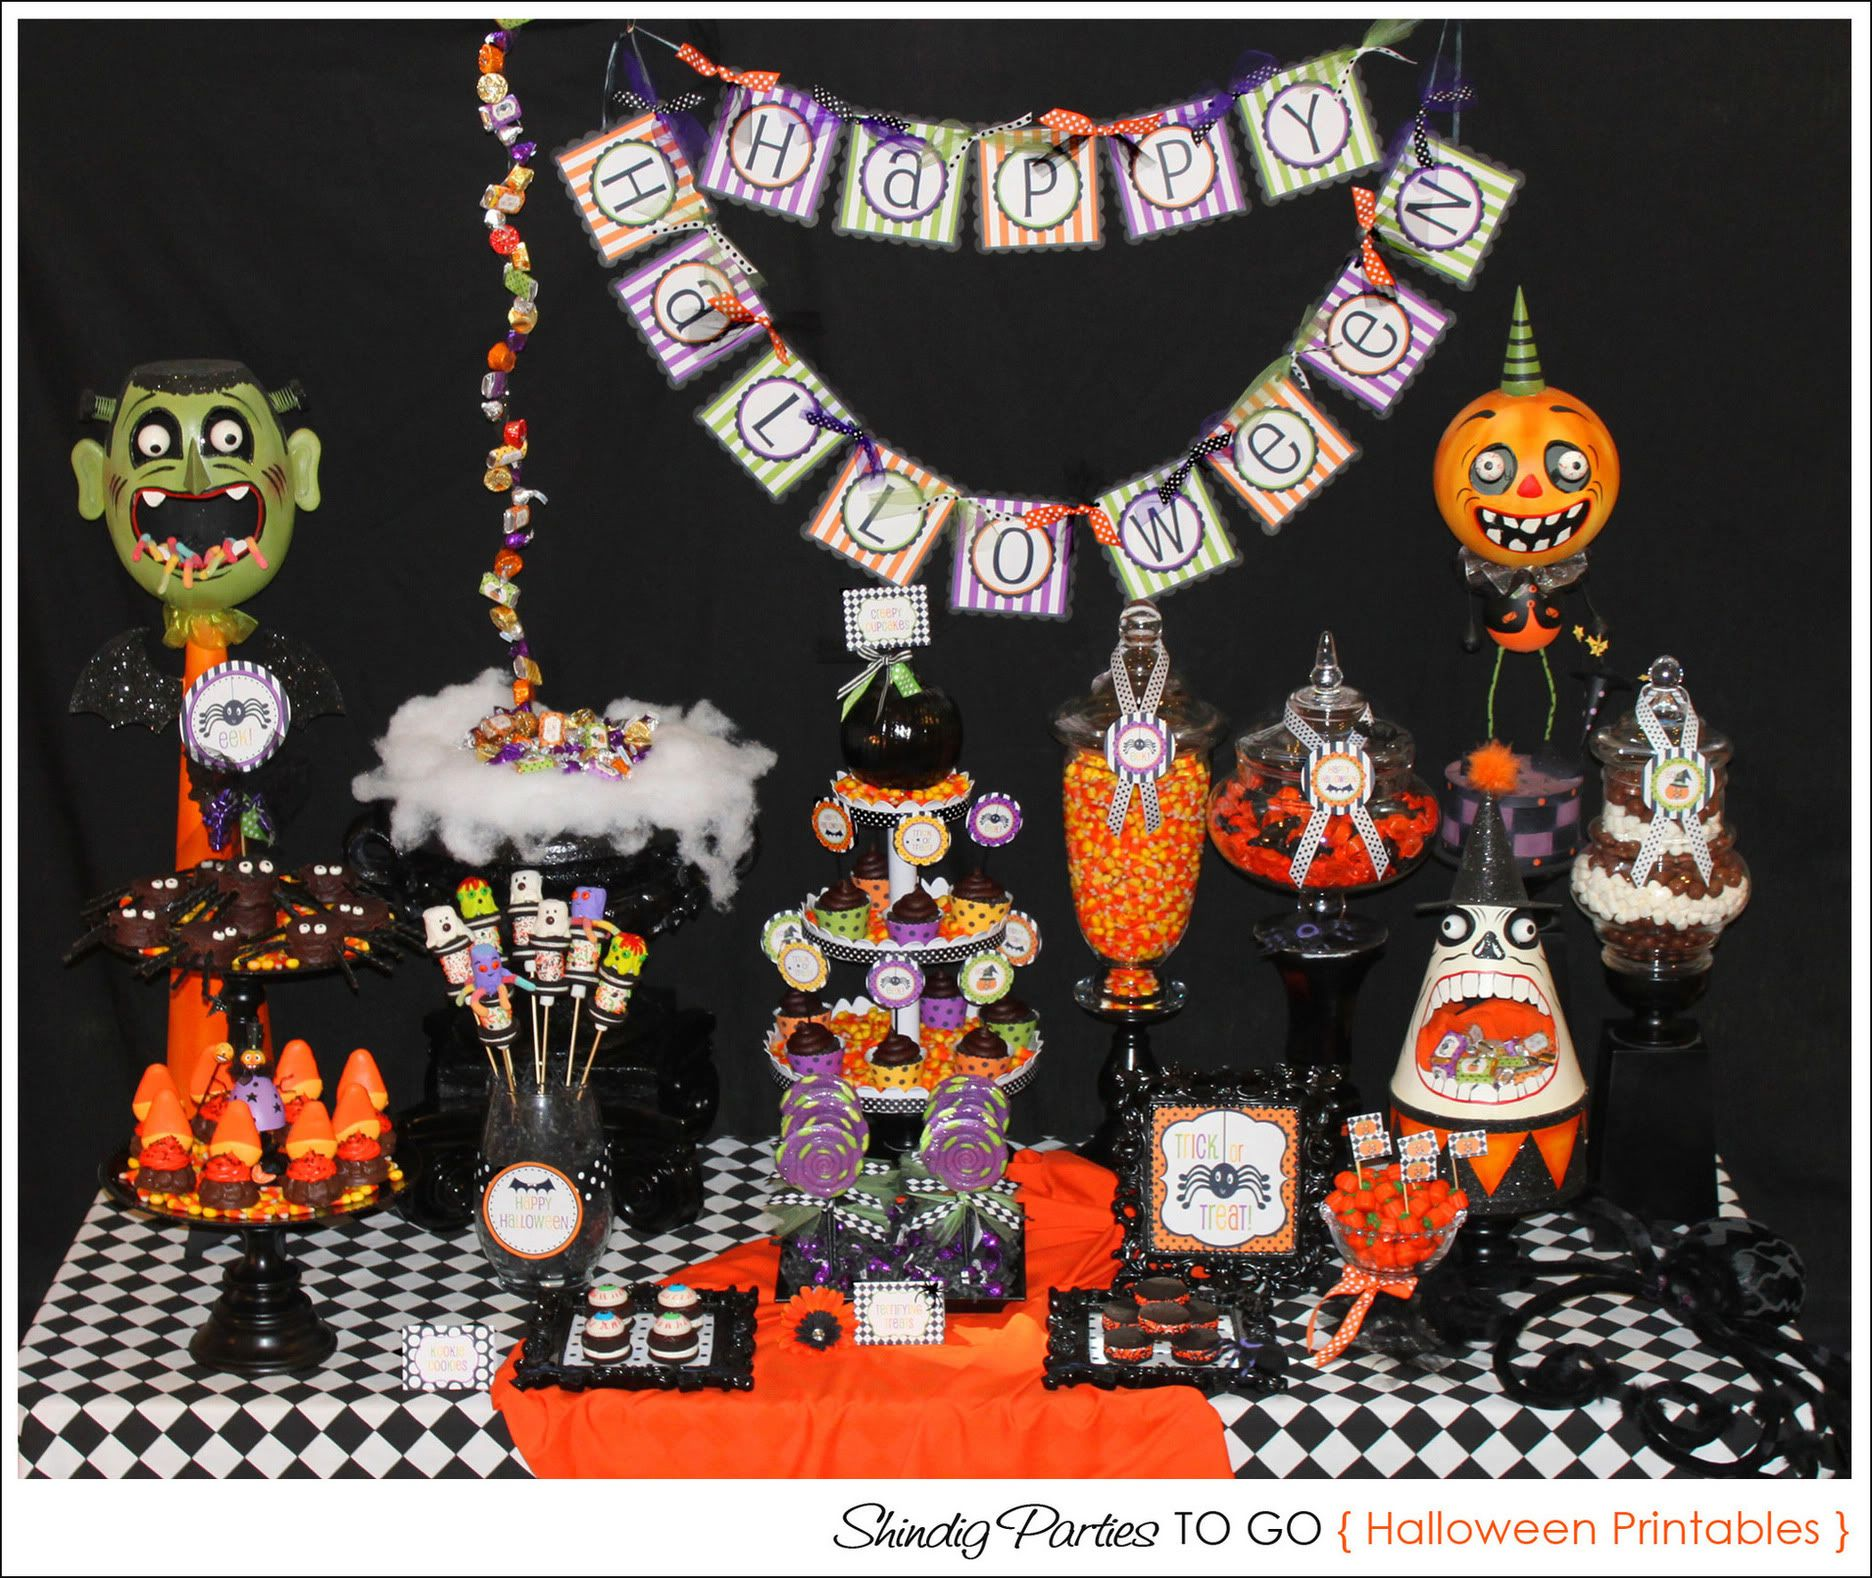 Halloween tablescape Hau\u0027oli La Heleui! Pinterest Halloween - Halloween Table Decorations Pinterest